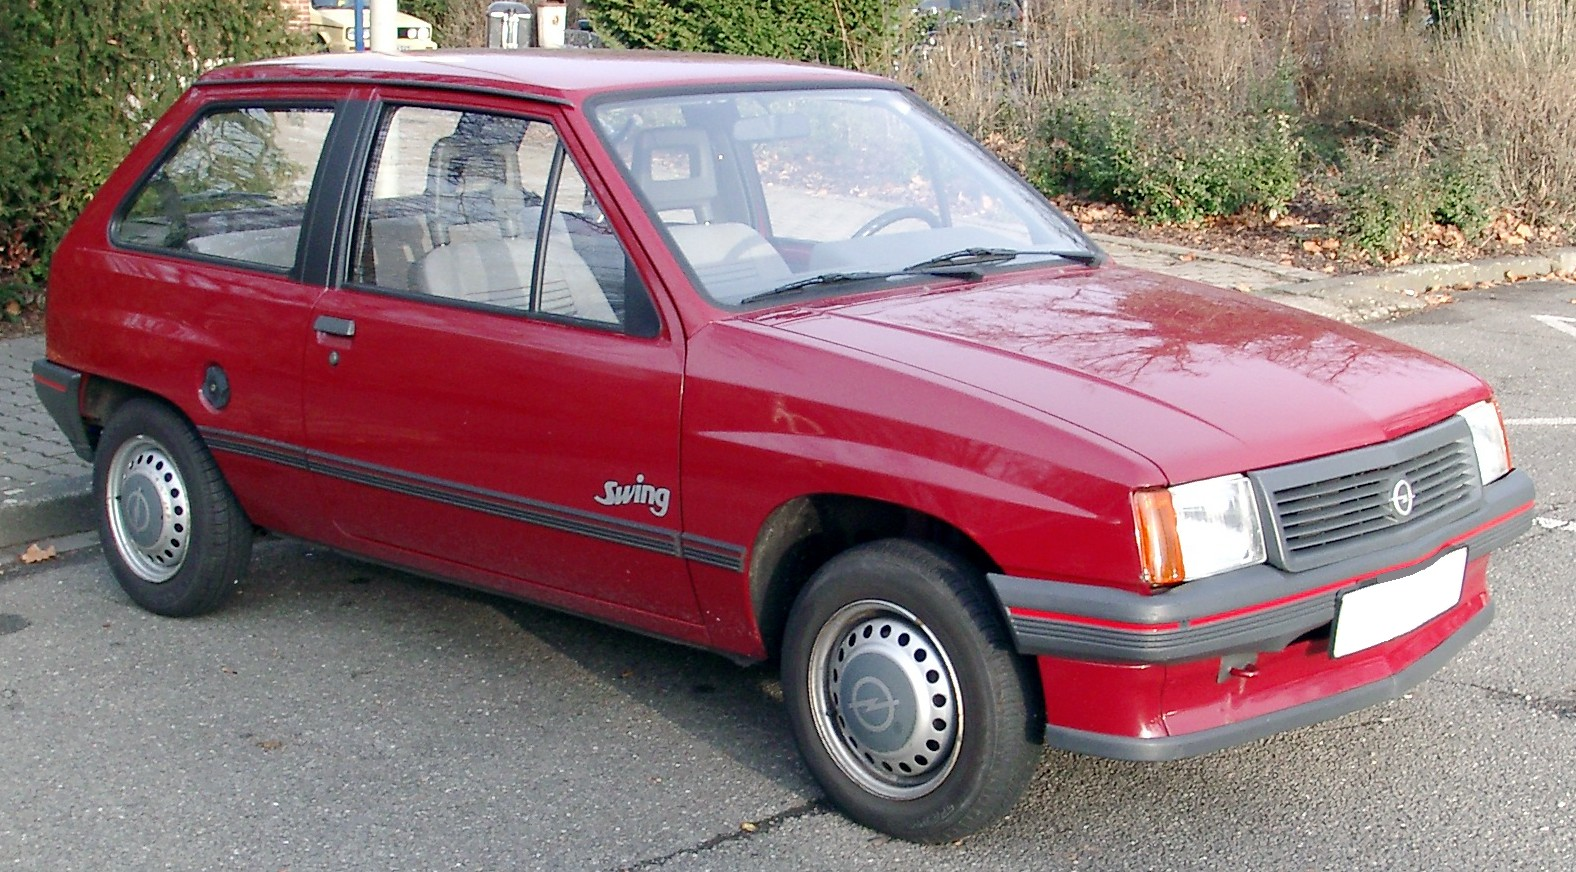 1992 Opel Corsa a - pictures, information and specs - Auto